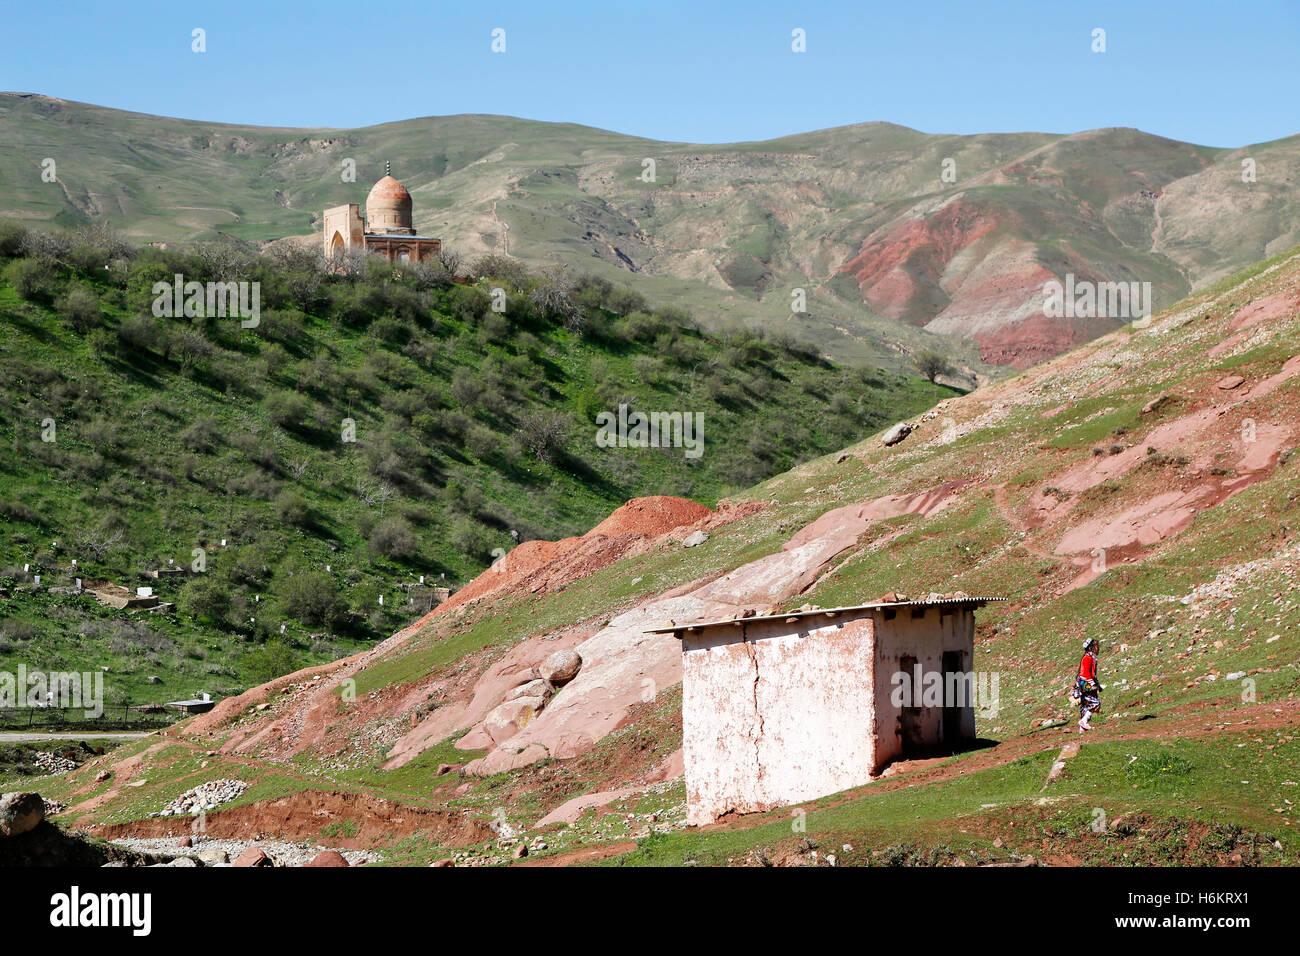 The remote farmers village of Langar in Uzbekistan. Het afgelegen dorp Langar in Oezbekistan. Stock Photo